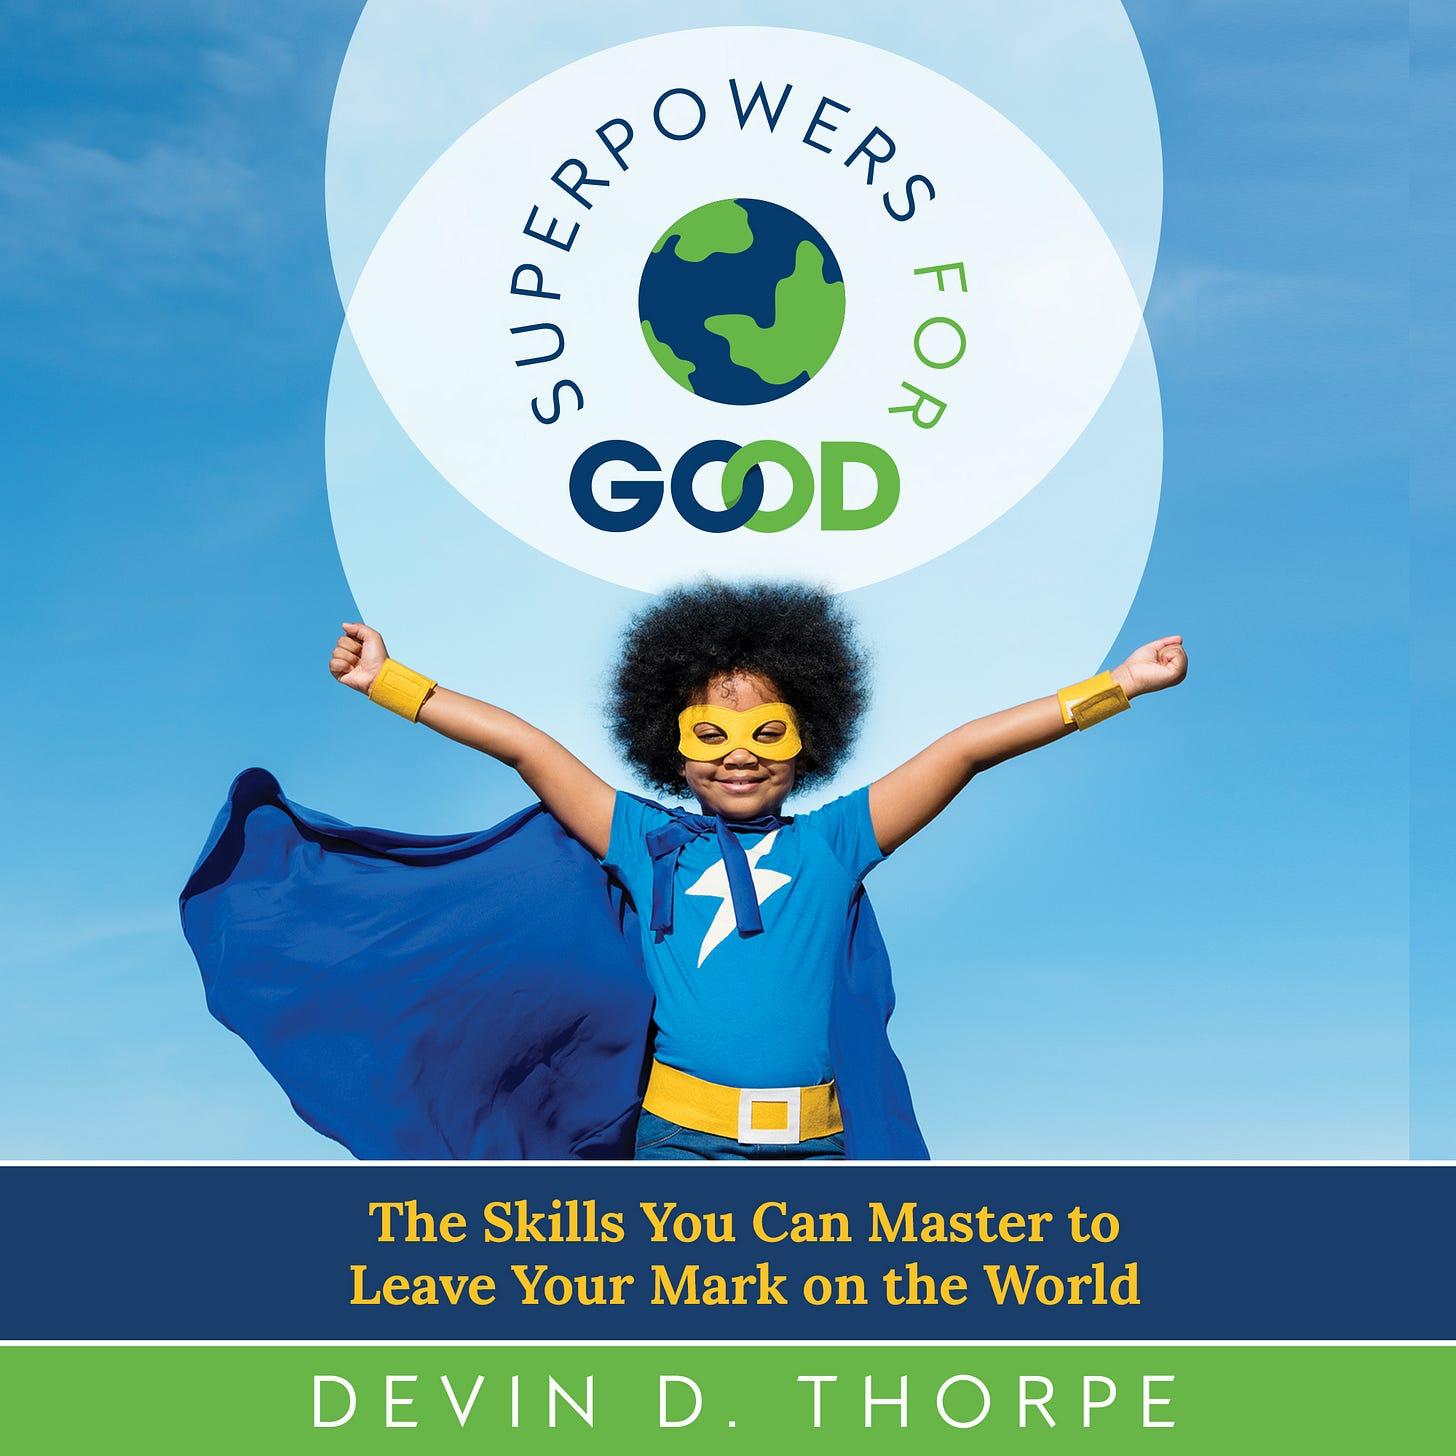 Book cover for Superpowers for Good, showing a kid dressed as a superhero.